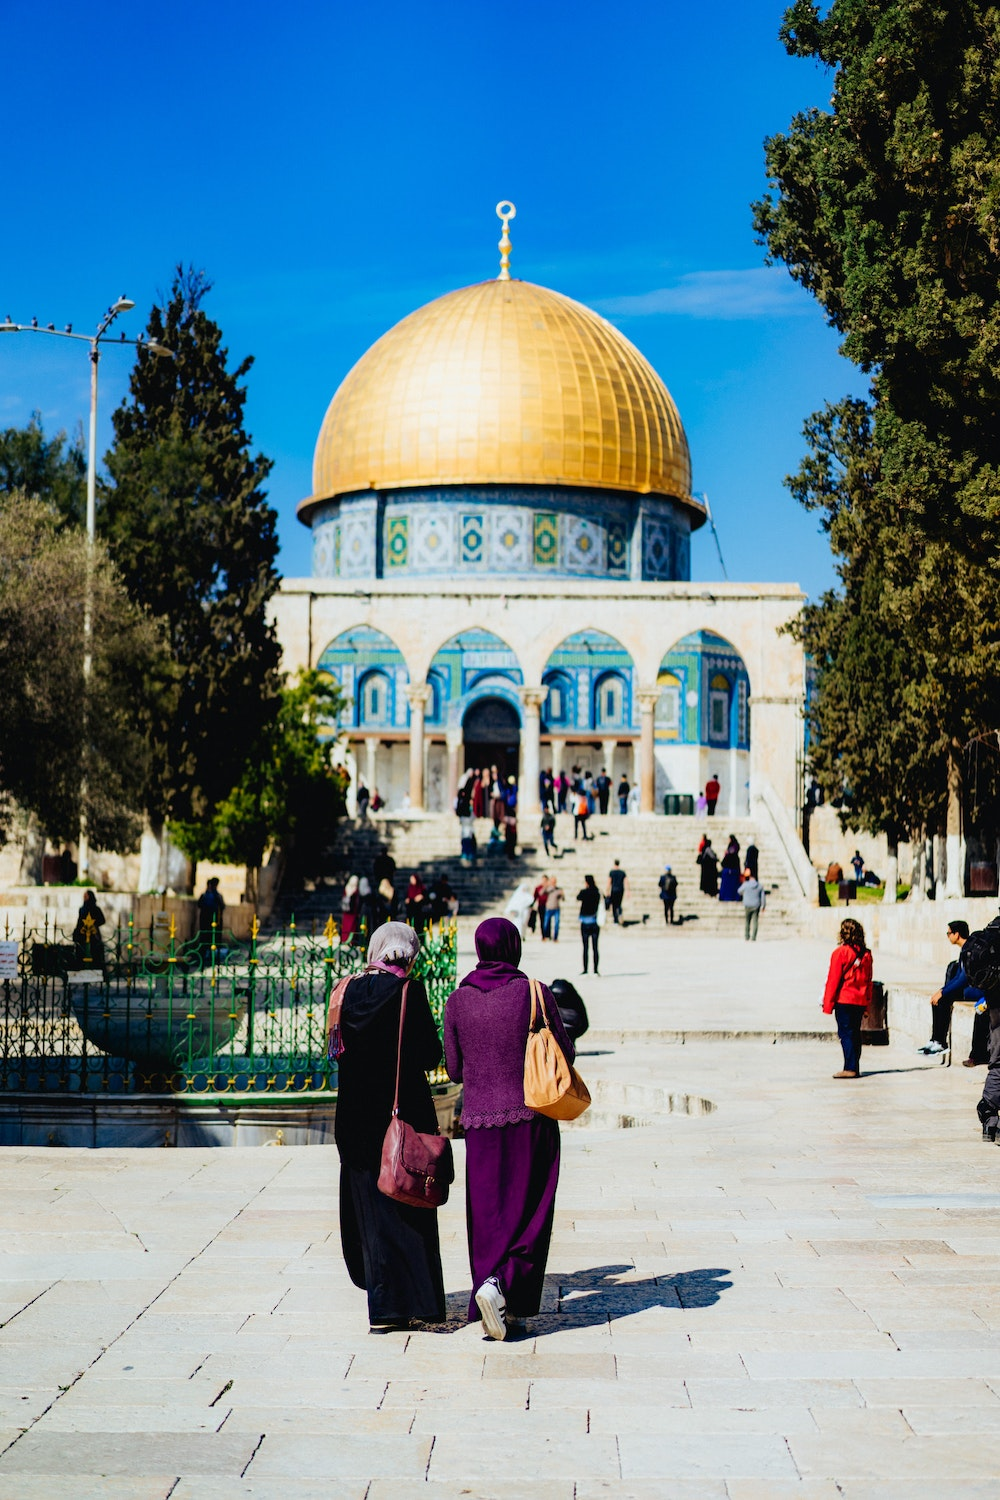 Two Muslim women walking together at the Dome of the Rock in Jerusalem, Israel